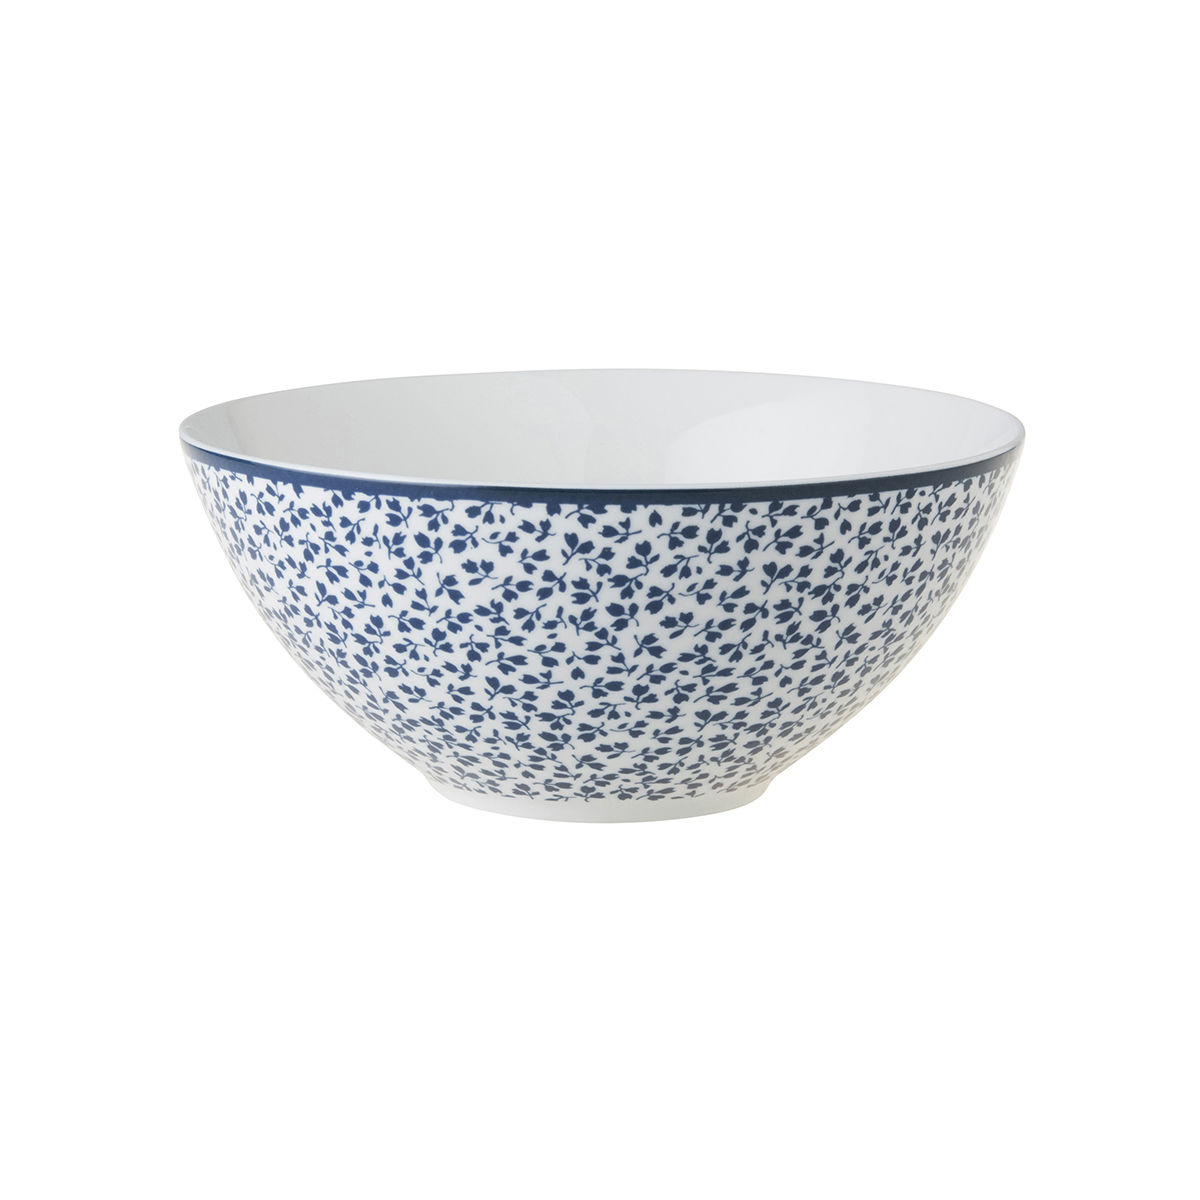 "Laura Ashley 6.4"" Bowl Floris - product images  of"